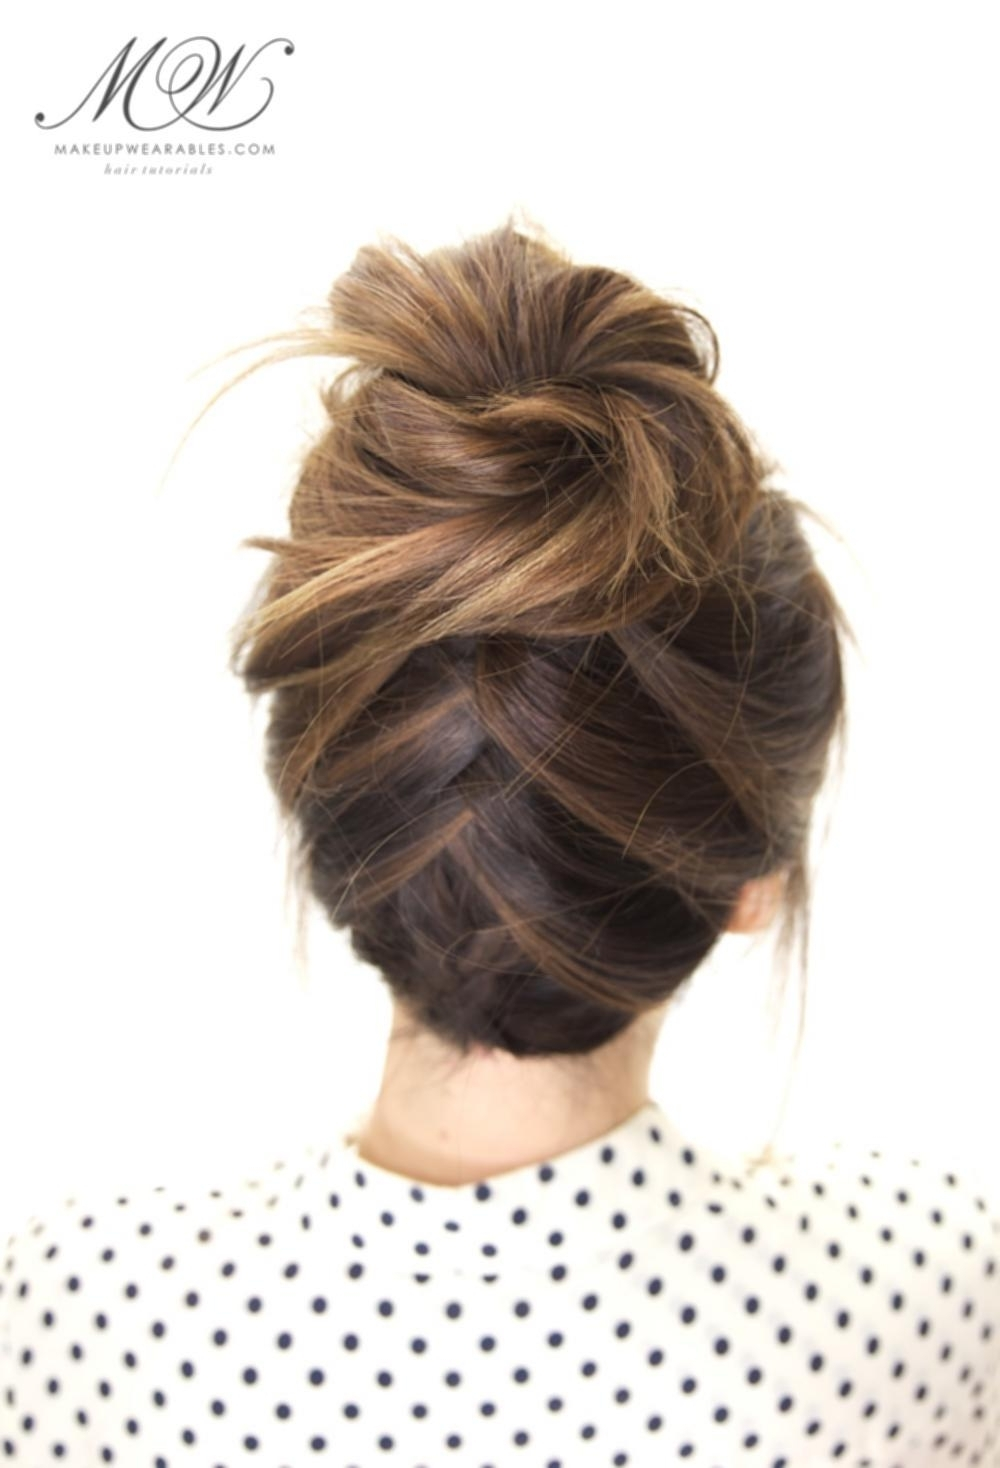 Messy Bun Hairstyles Tumblr Tuxedo Braid Bun Hairstyle Cute Everyday Throughout Updo Hairstyles For School (View 12 of 15)